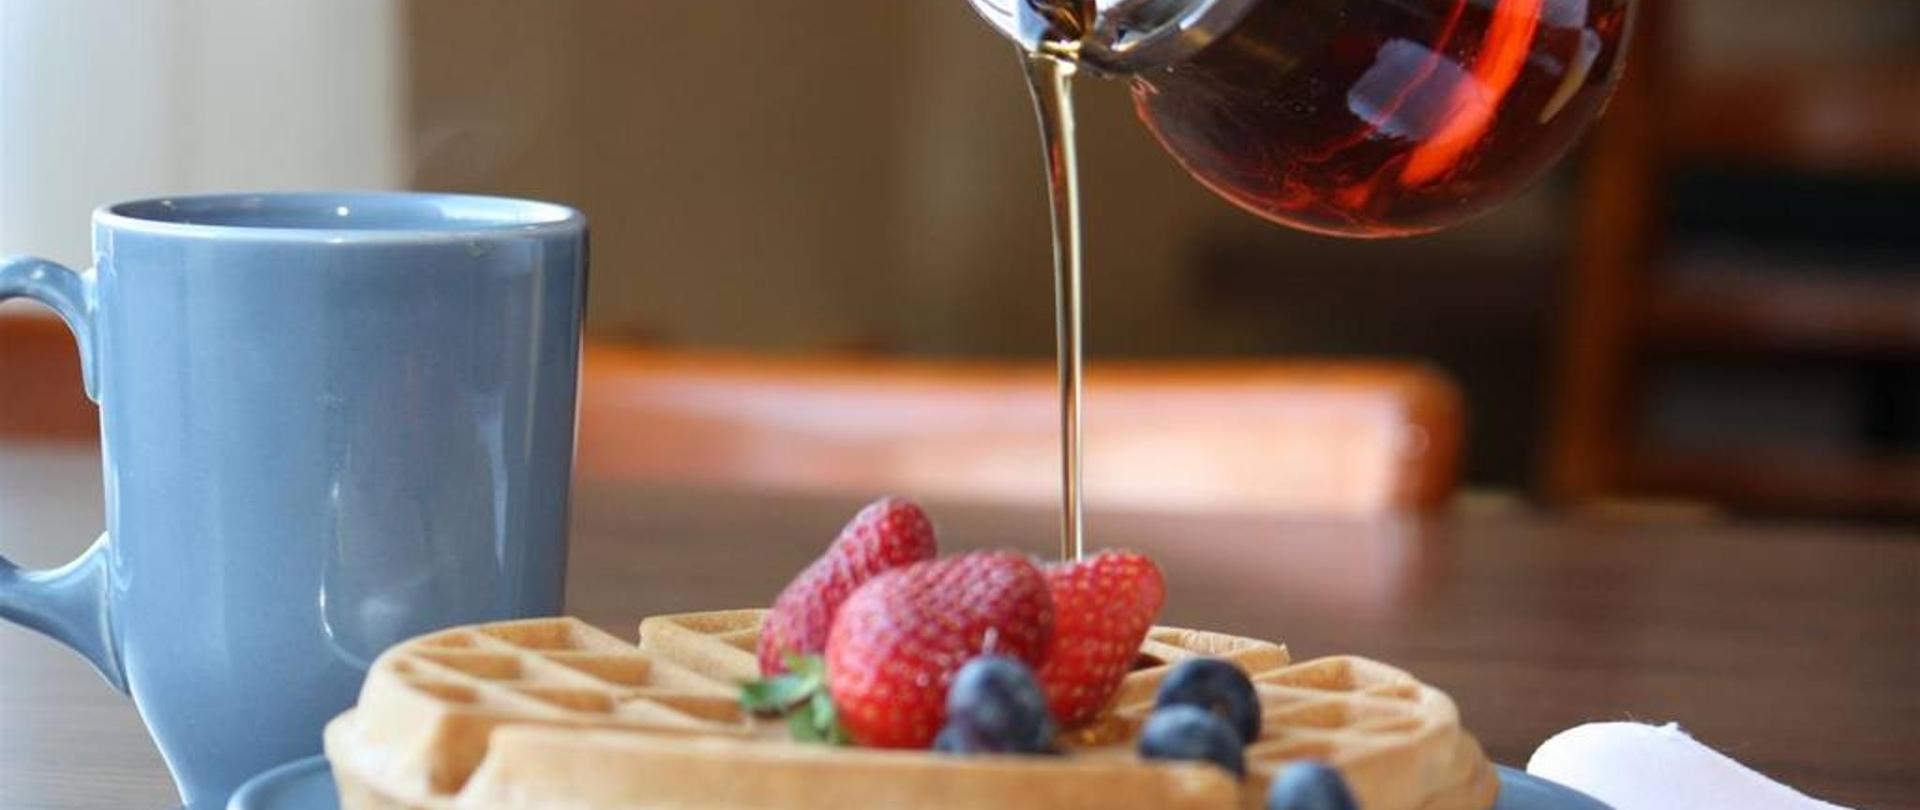 01-delicious-waffles-with-syrup.JPG.1024x0.JPG